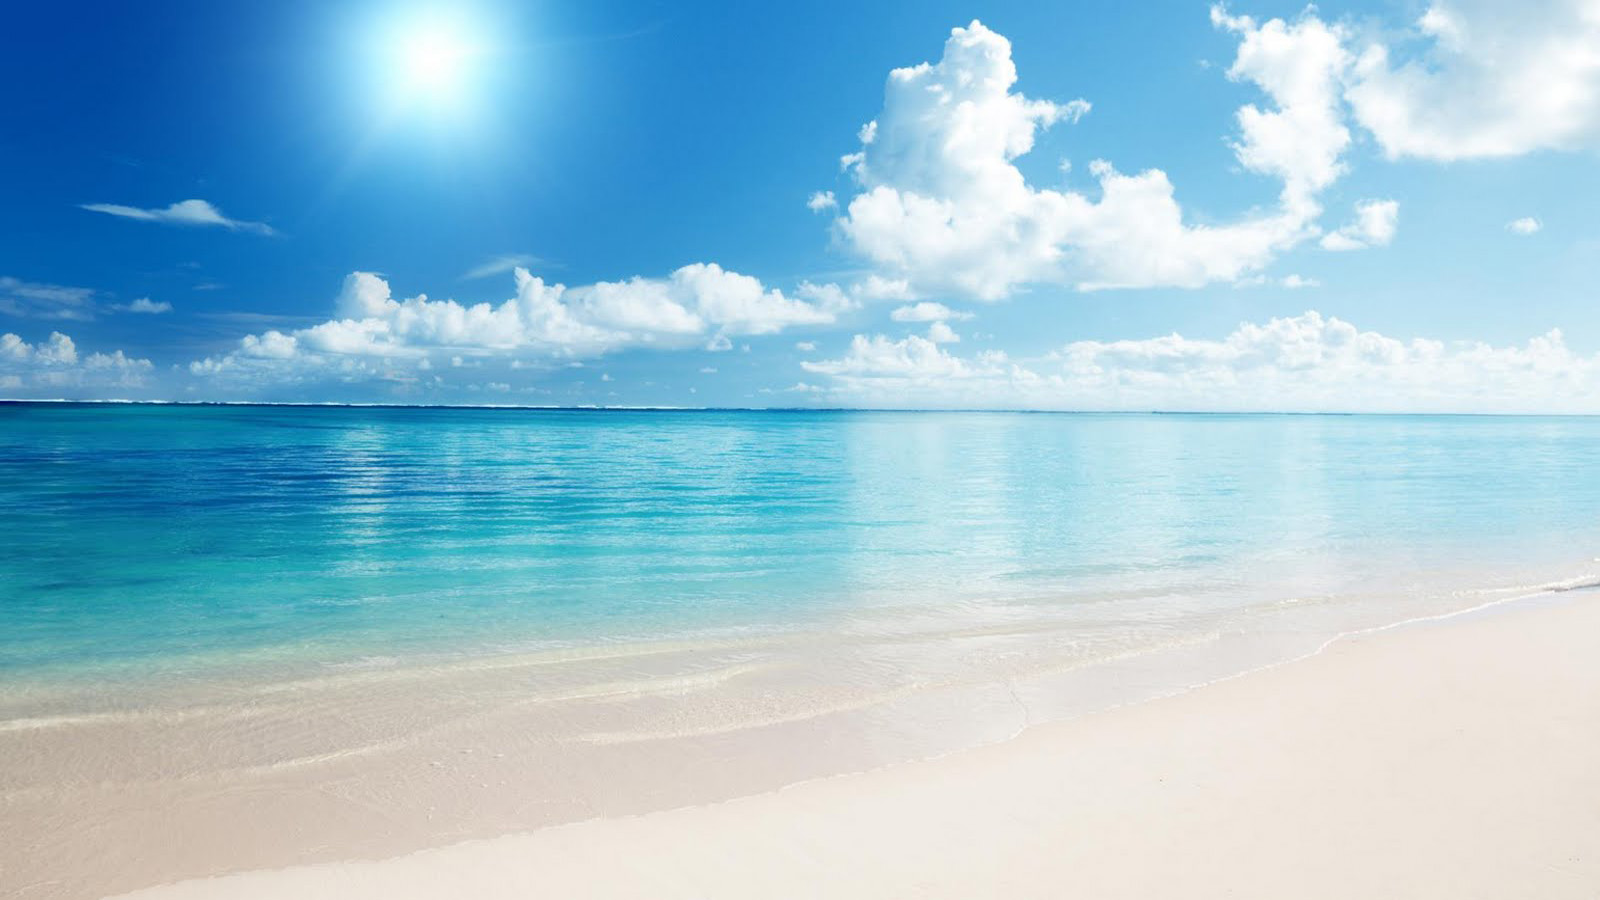 Free beach wallpaper backgrounds